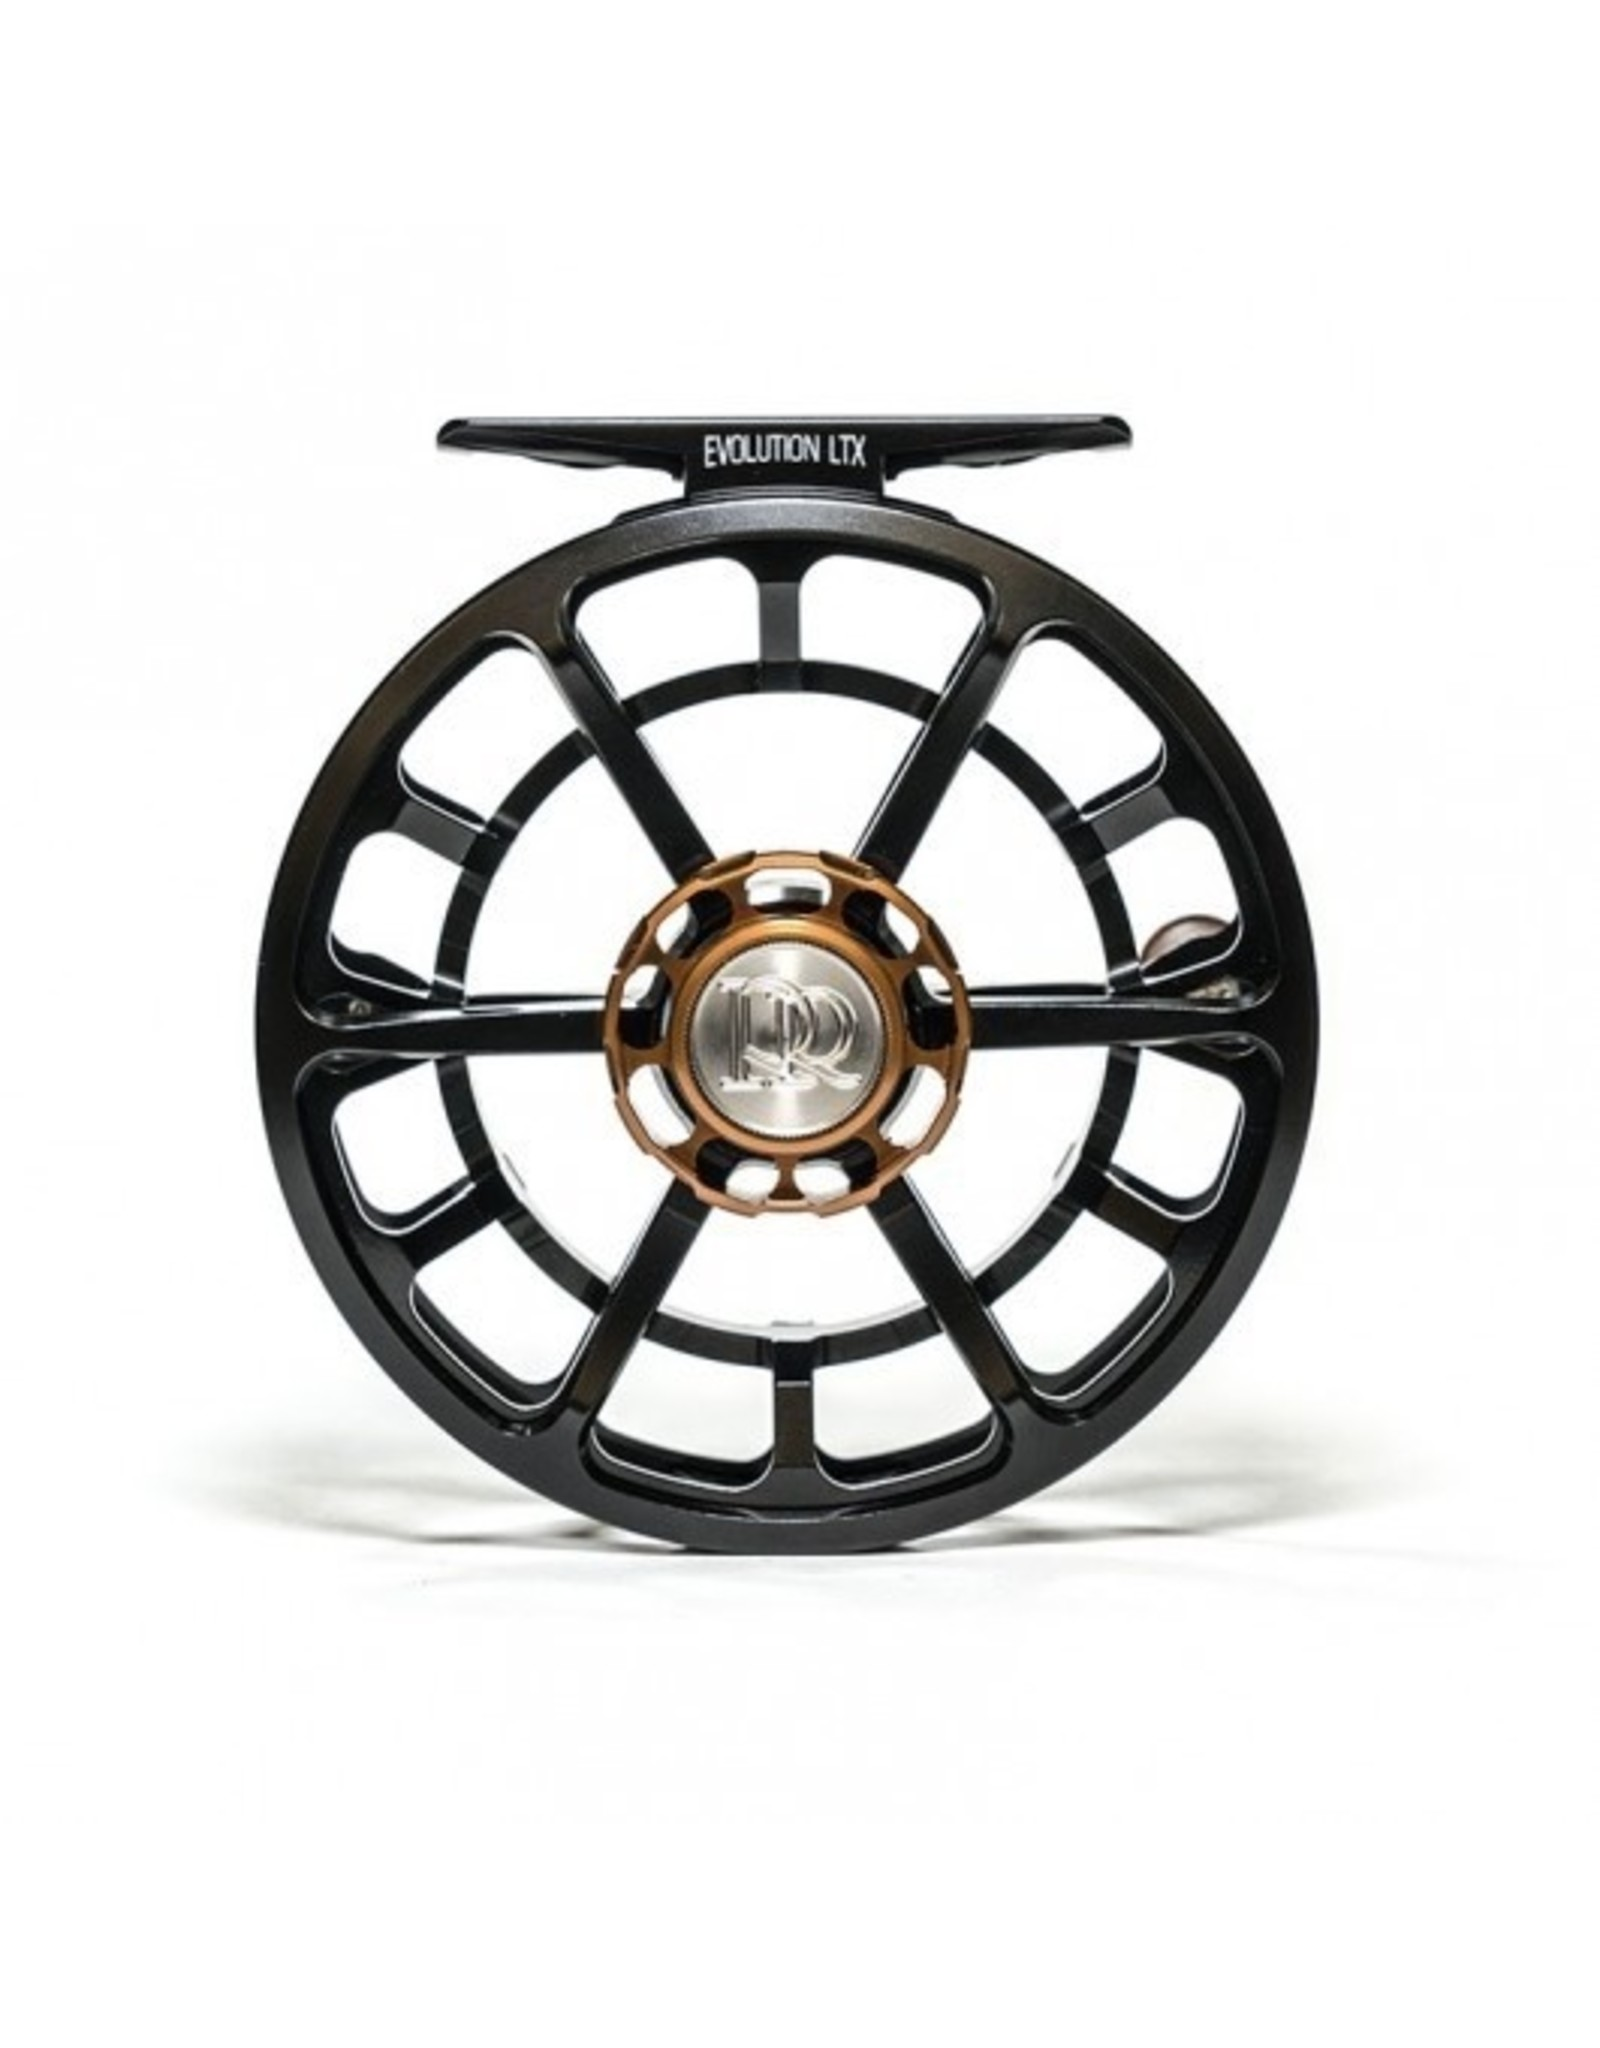 Ross Ross Evolution LTX 5/6 Reel (Black)